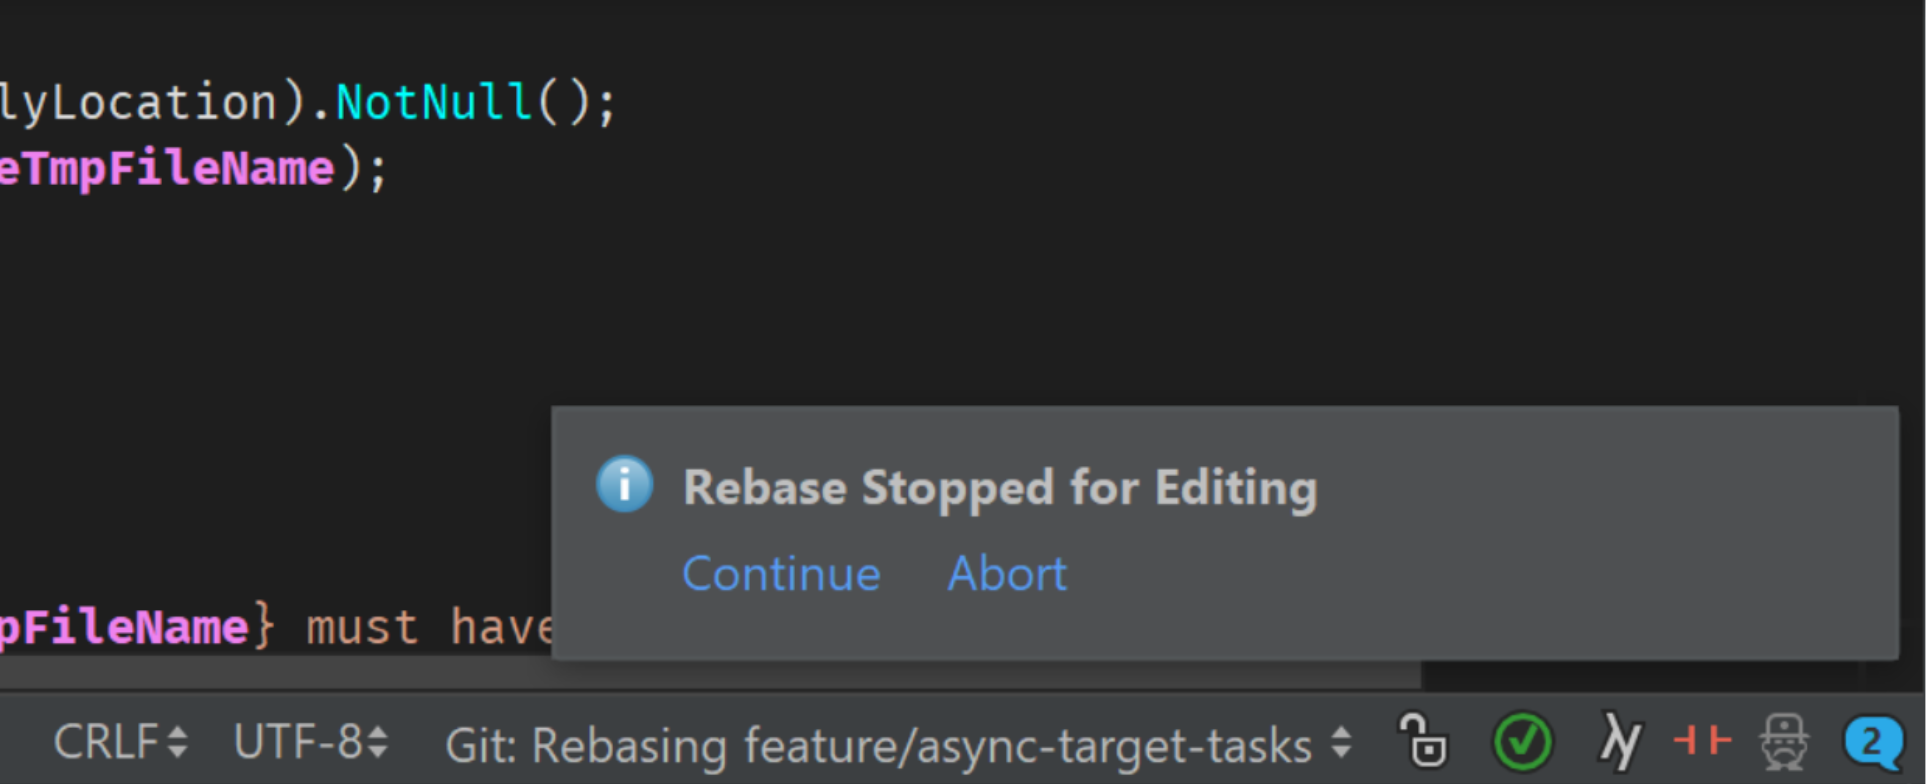 Continuing with rebase